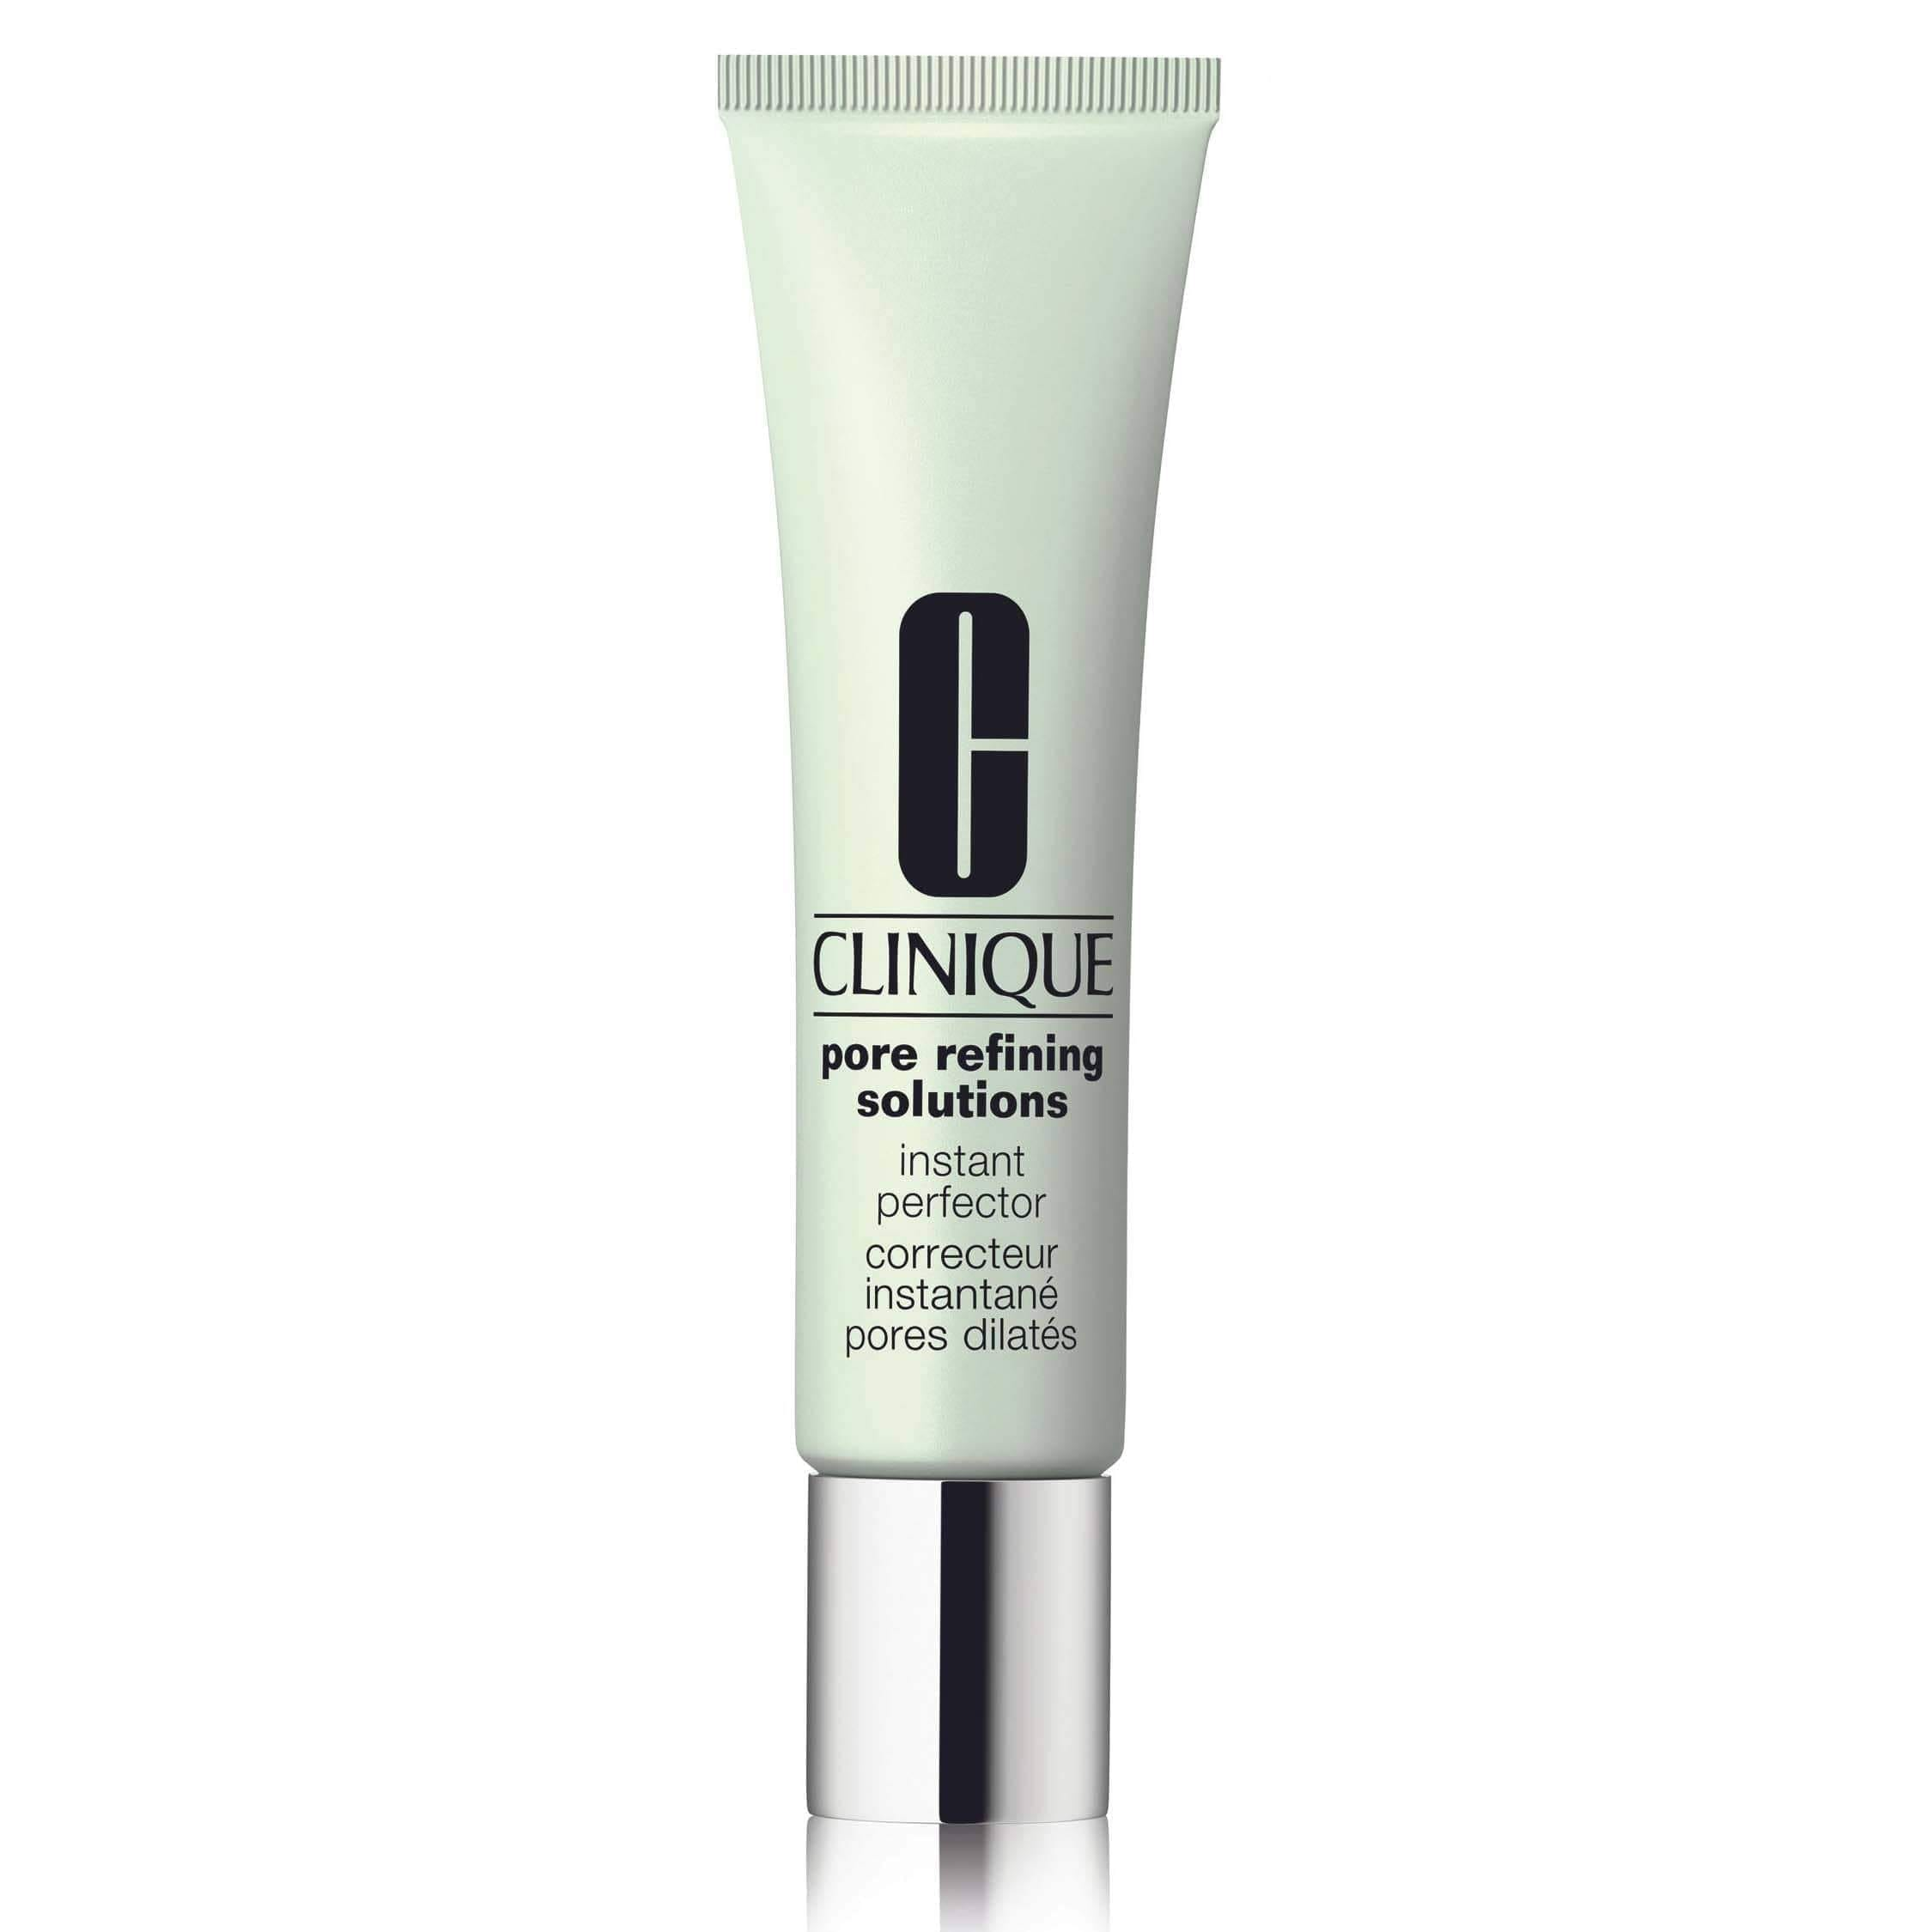 Pore-refining-solutions-Clinique